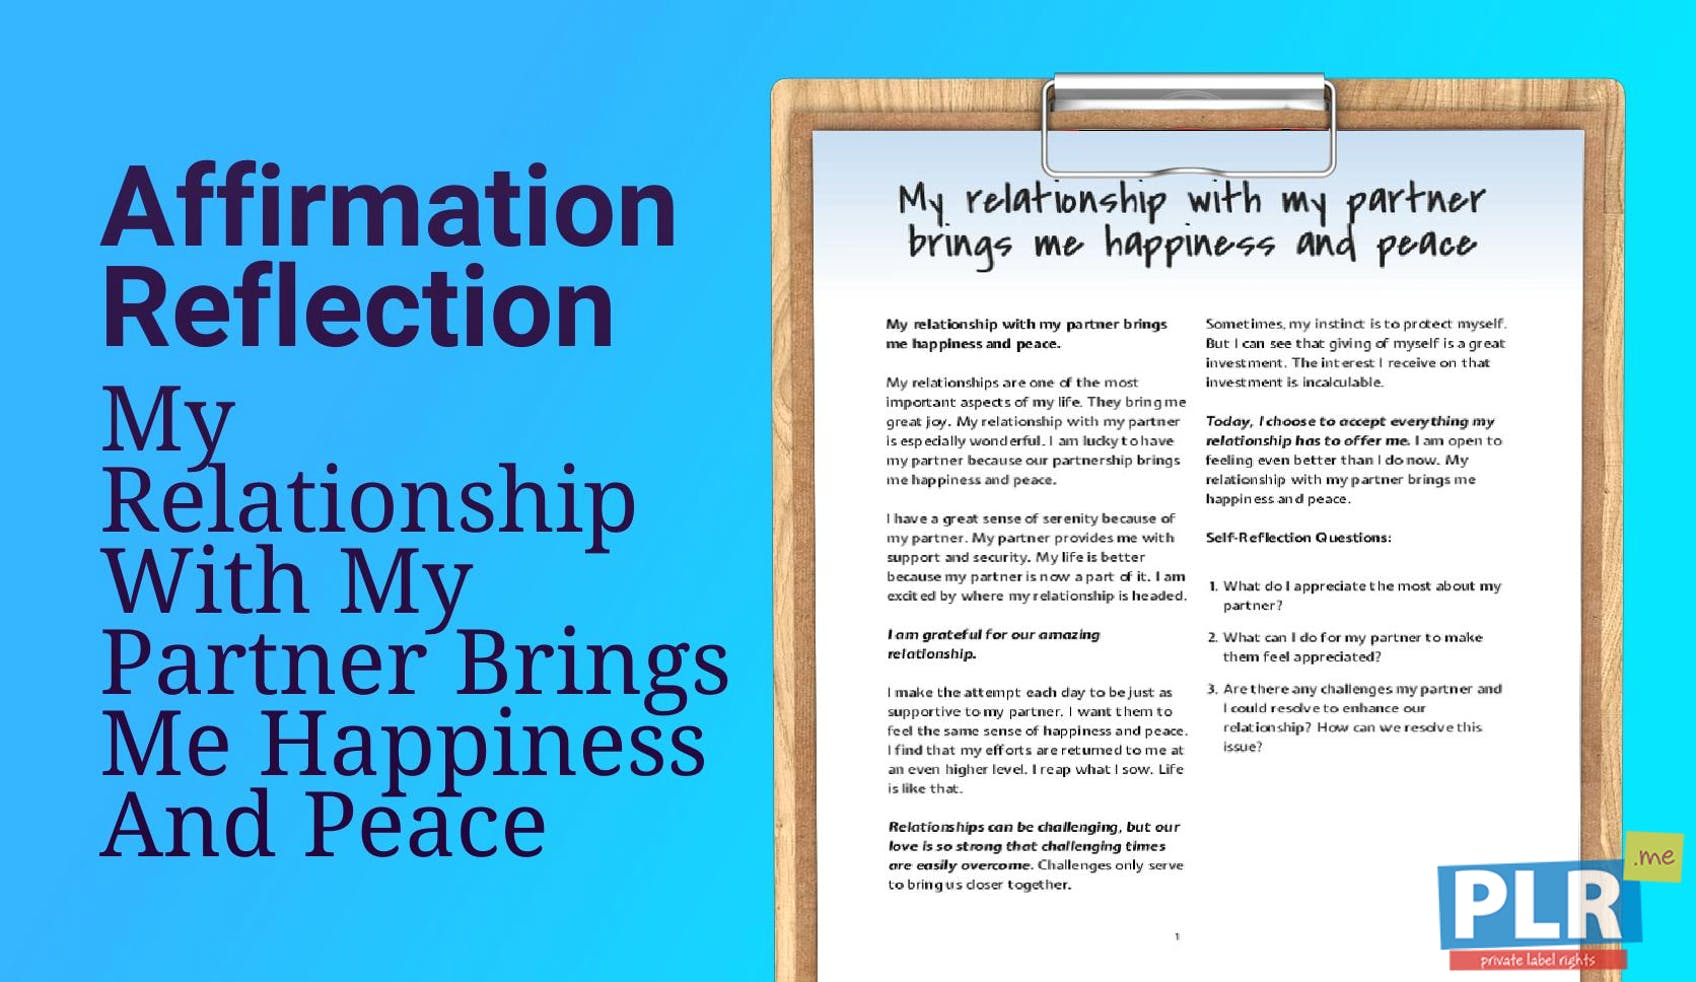 My Relationship With My Partner Brings Me Happiness And Peace